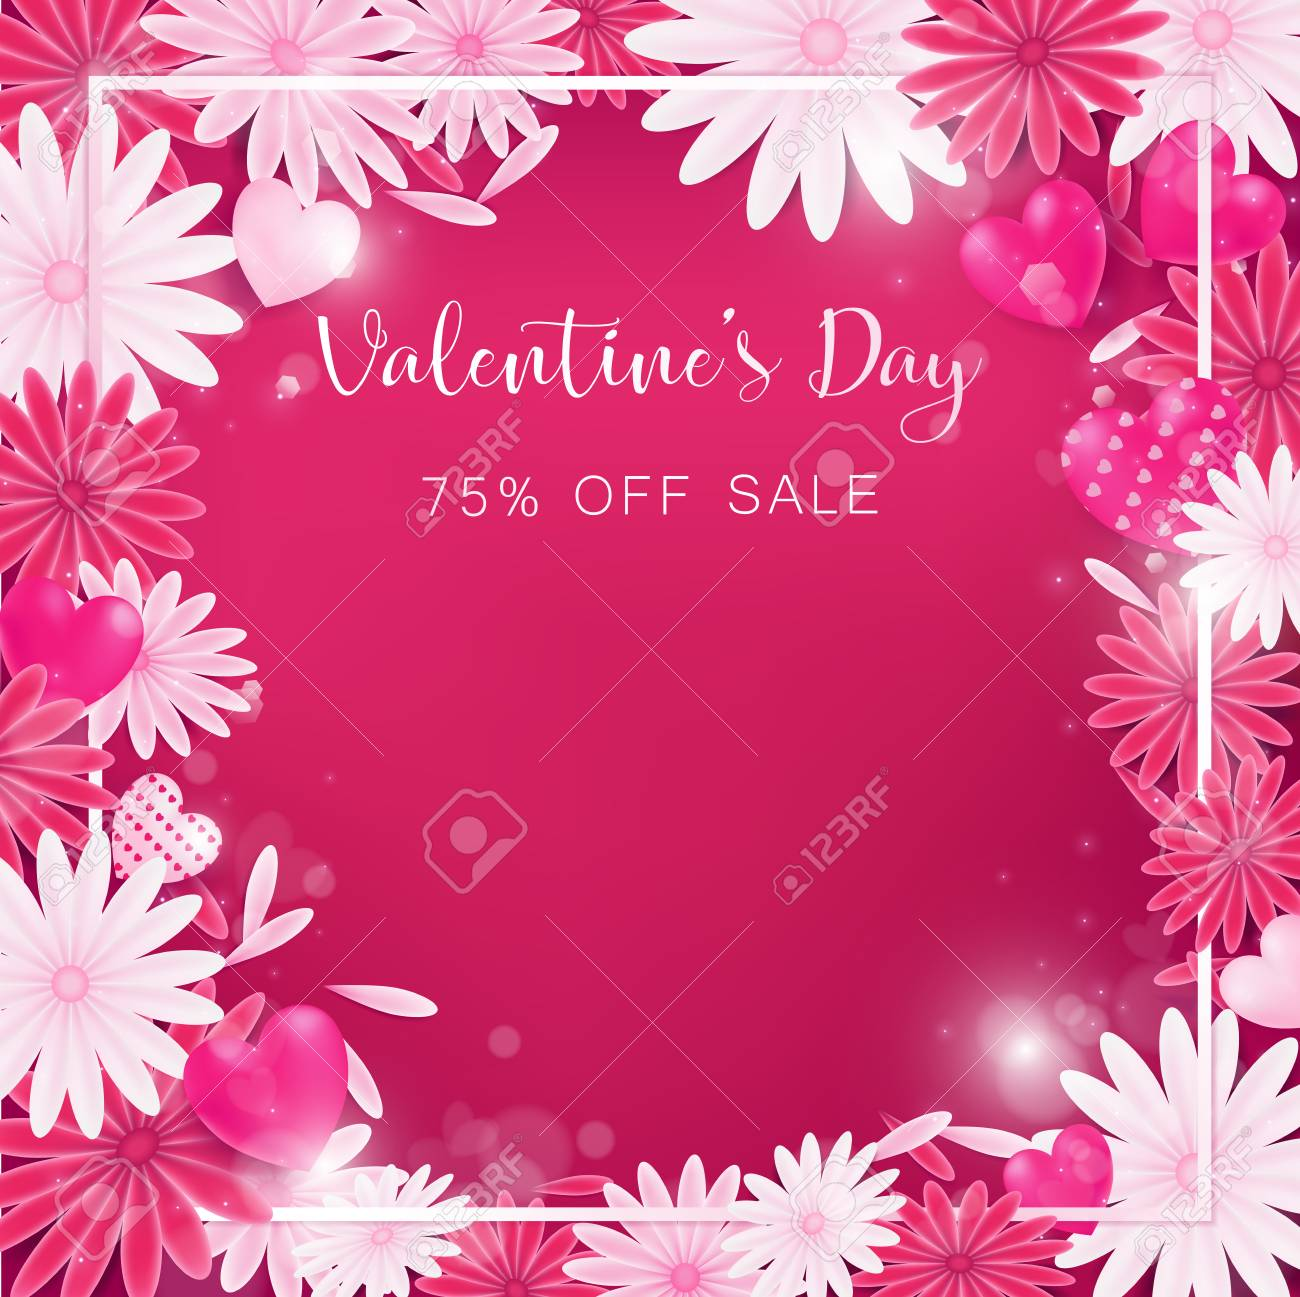 Valentine floral invitation is decorate in red and pink color valentine floral invitation is decorate in red and pink color as flower blooming border is stopboris Images